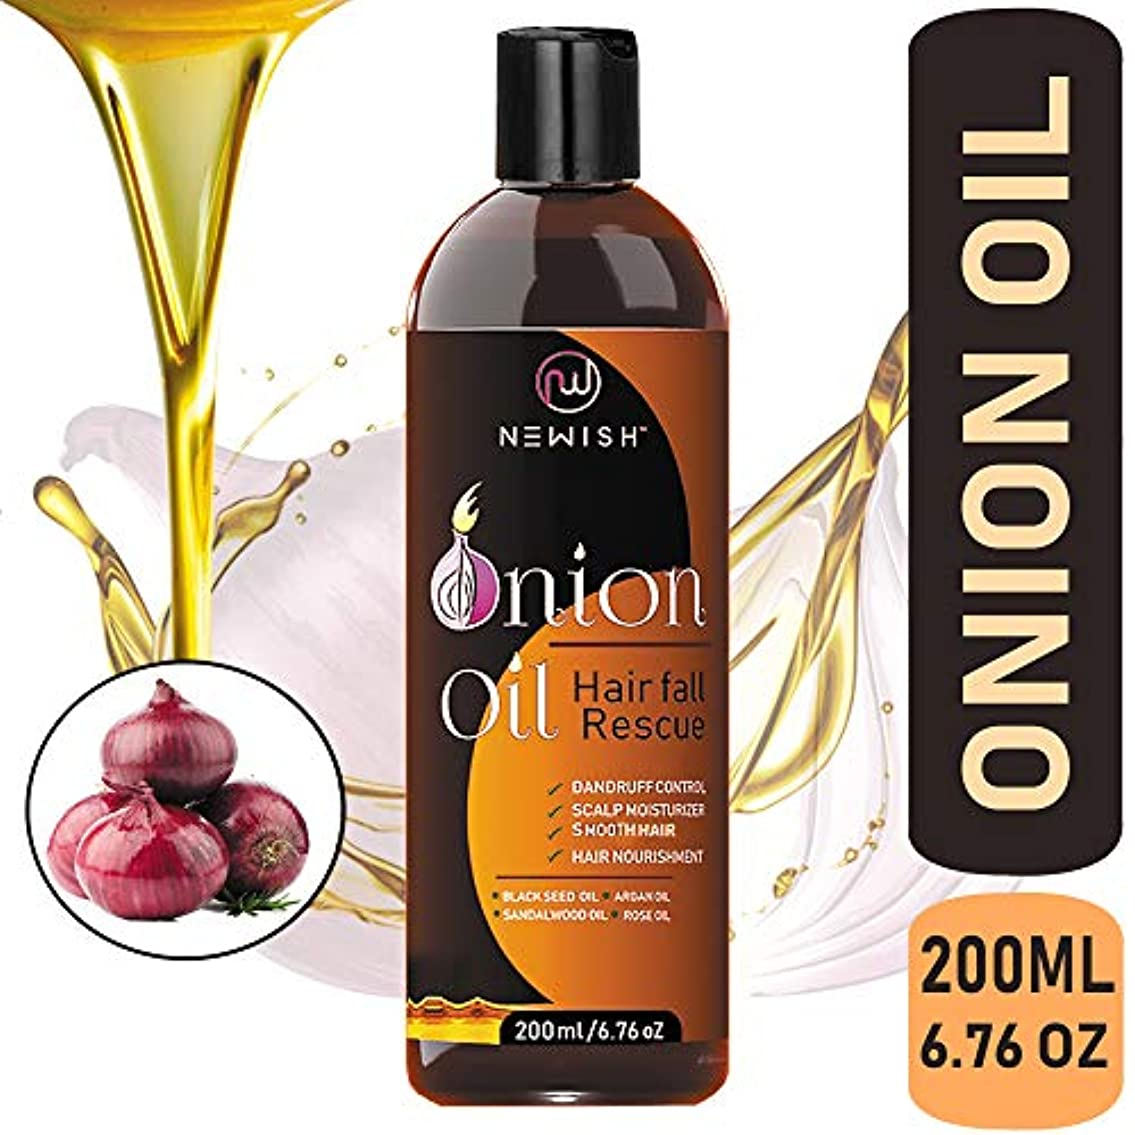 ポケット海藻変わるNewish Red Onion Oil for Hair Regrowth Men and Women, 200ml